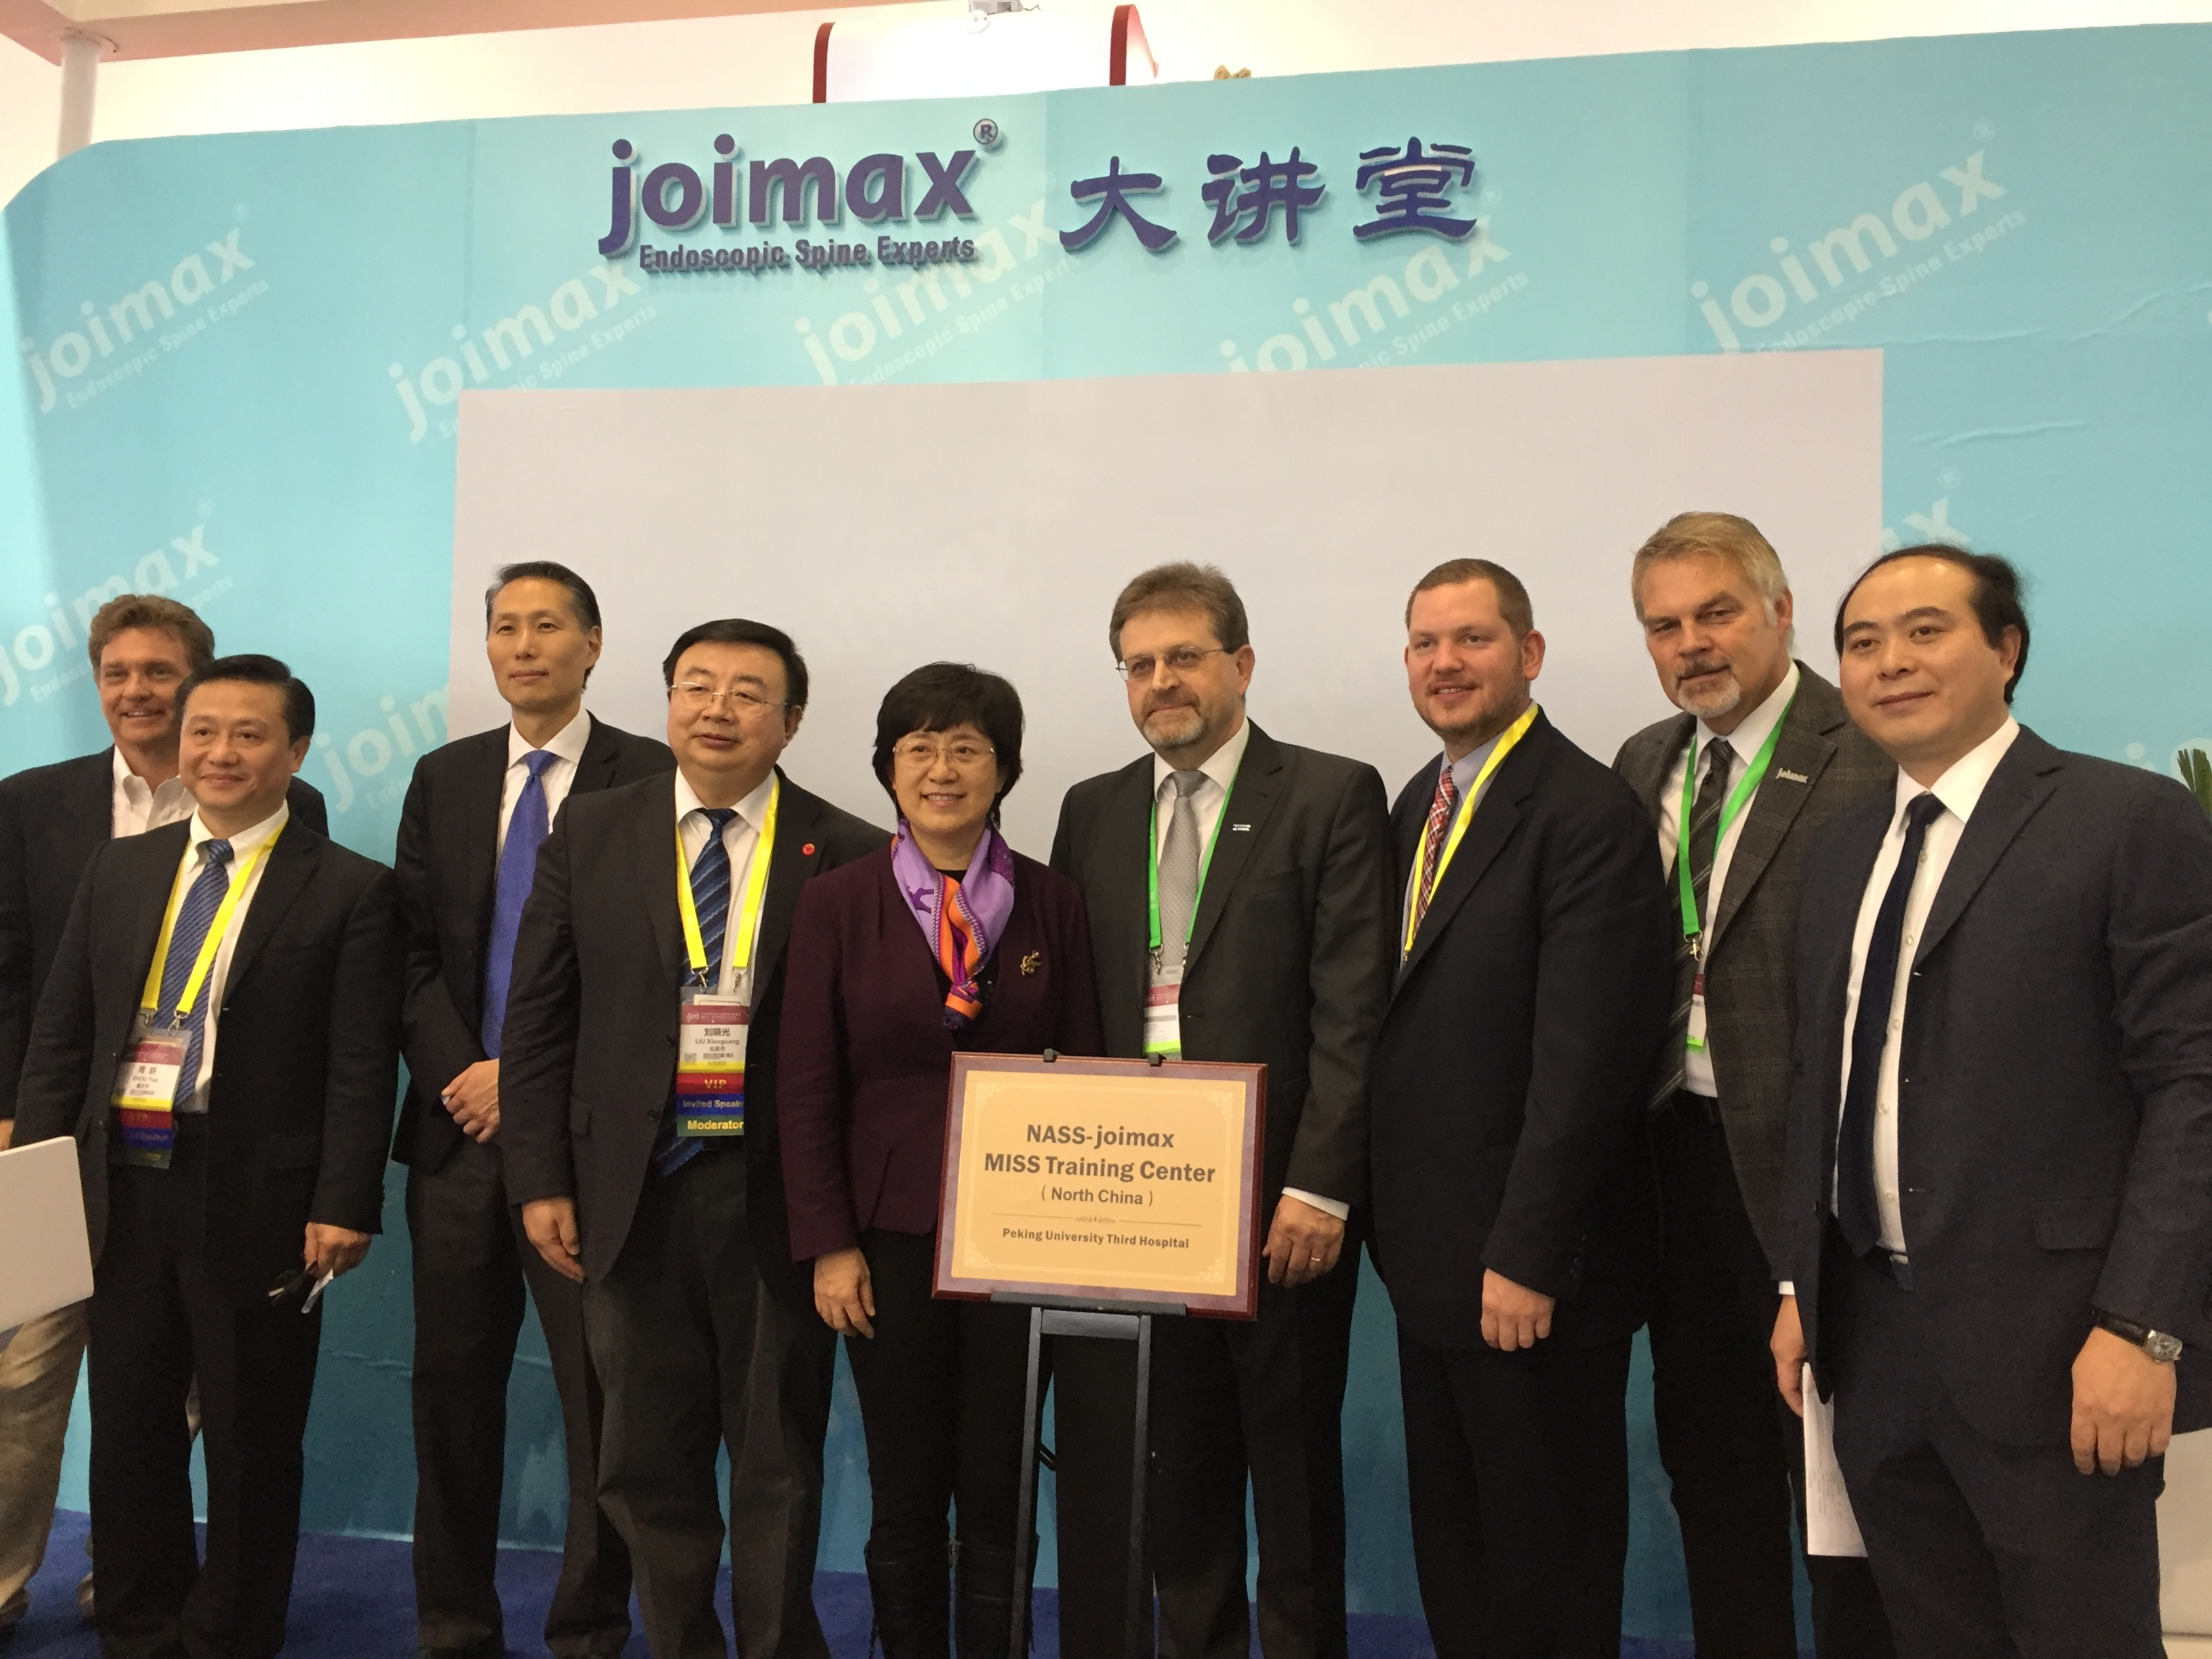 From left to right: Edward Dohring, MD, NASS Board of Directors; Prof. Yue Zhou, Xinqiao Hospital, Chairman of Chinese Society for MISS and joimax® faculty; Jeffrey C. Wang, MD, NASS Board of Directors; Prof. Xiaoguang Liu, Vice President Peking University Third Hospital; Prof. Jie Qiao, President Peking University Third Hospital; Wolfgang Ries, CEO & founder joimax® GmbH; Brad Repsold, NASS Assoc. Executive Director; Michael Roberz, International Sales Director joimax® GmbH; Qinguang You, General Manager (Photo: Business Wire)